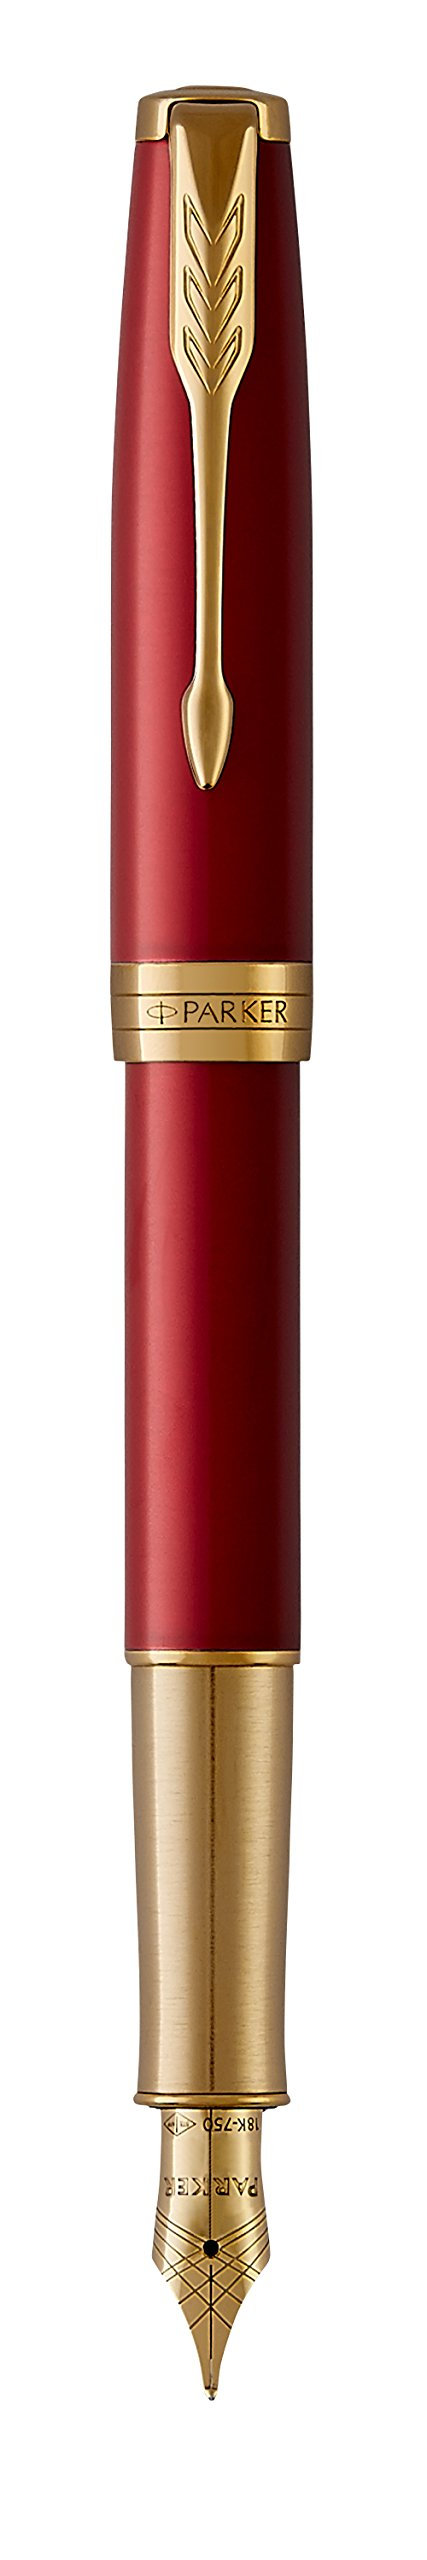 PARKER Sonnet Fountain Pen, Red Lacquer with Gold Trim, Solid 18k Gold Medium Nib by Parker (Image #5)